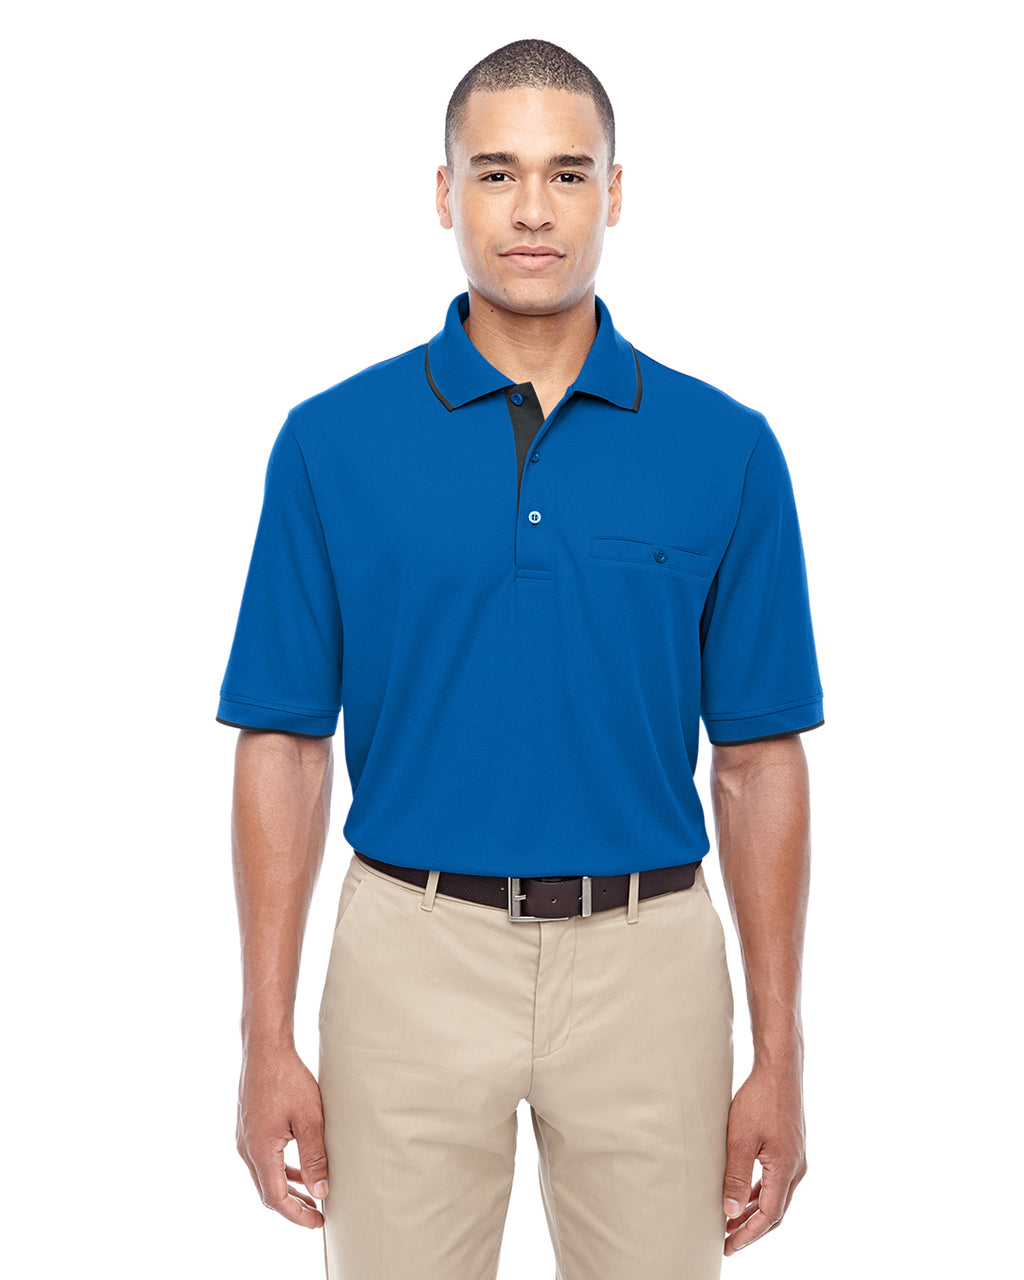 88222 - Core 365 Men's Motive Performance Piqué Polo with Tipped Collar